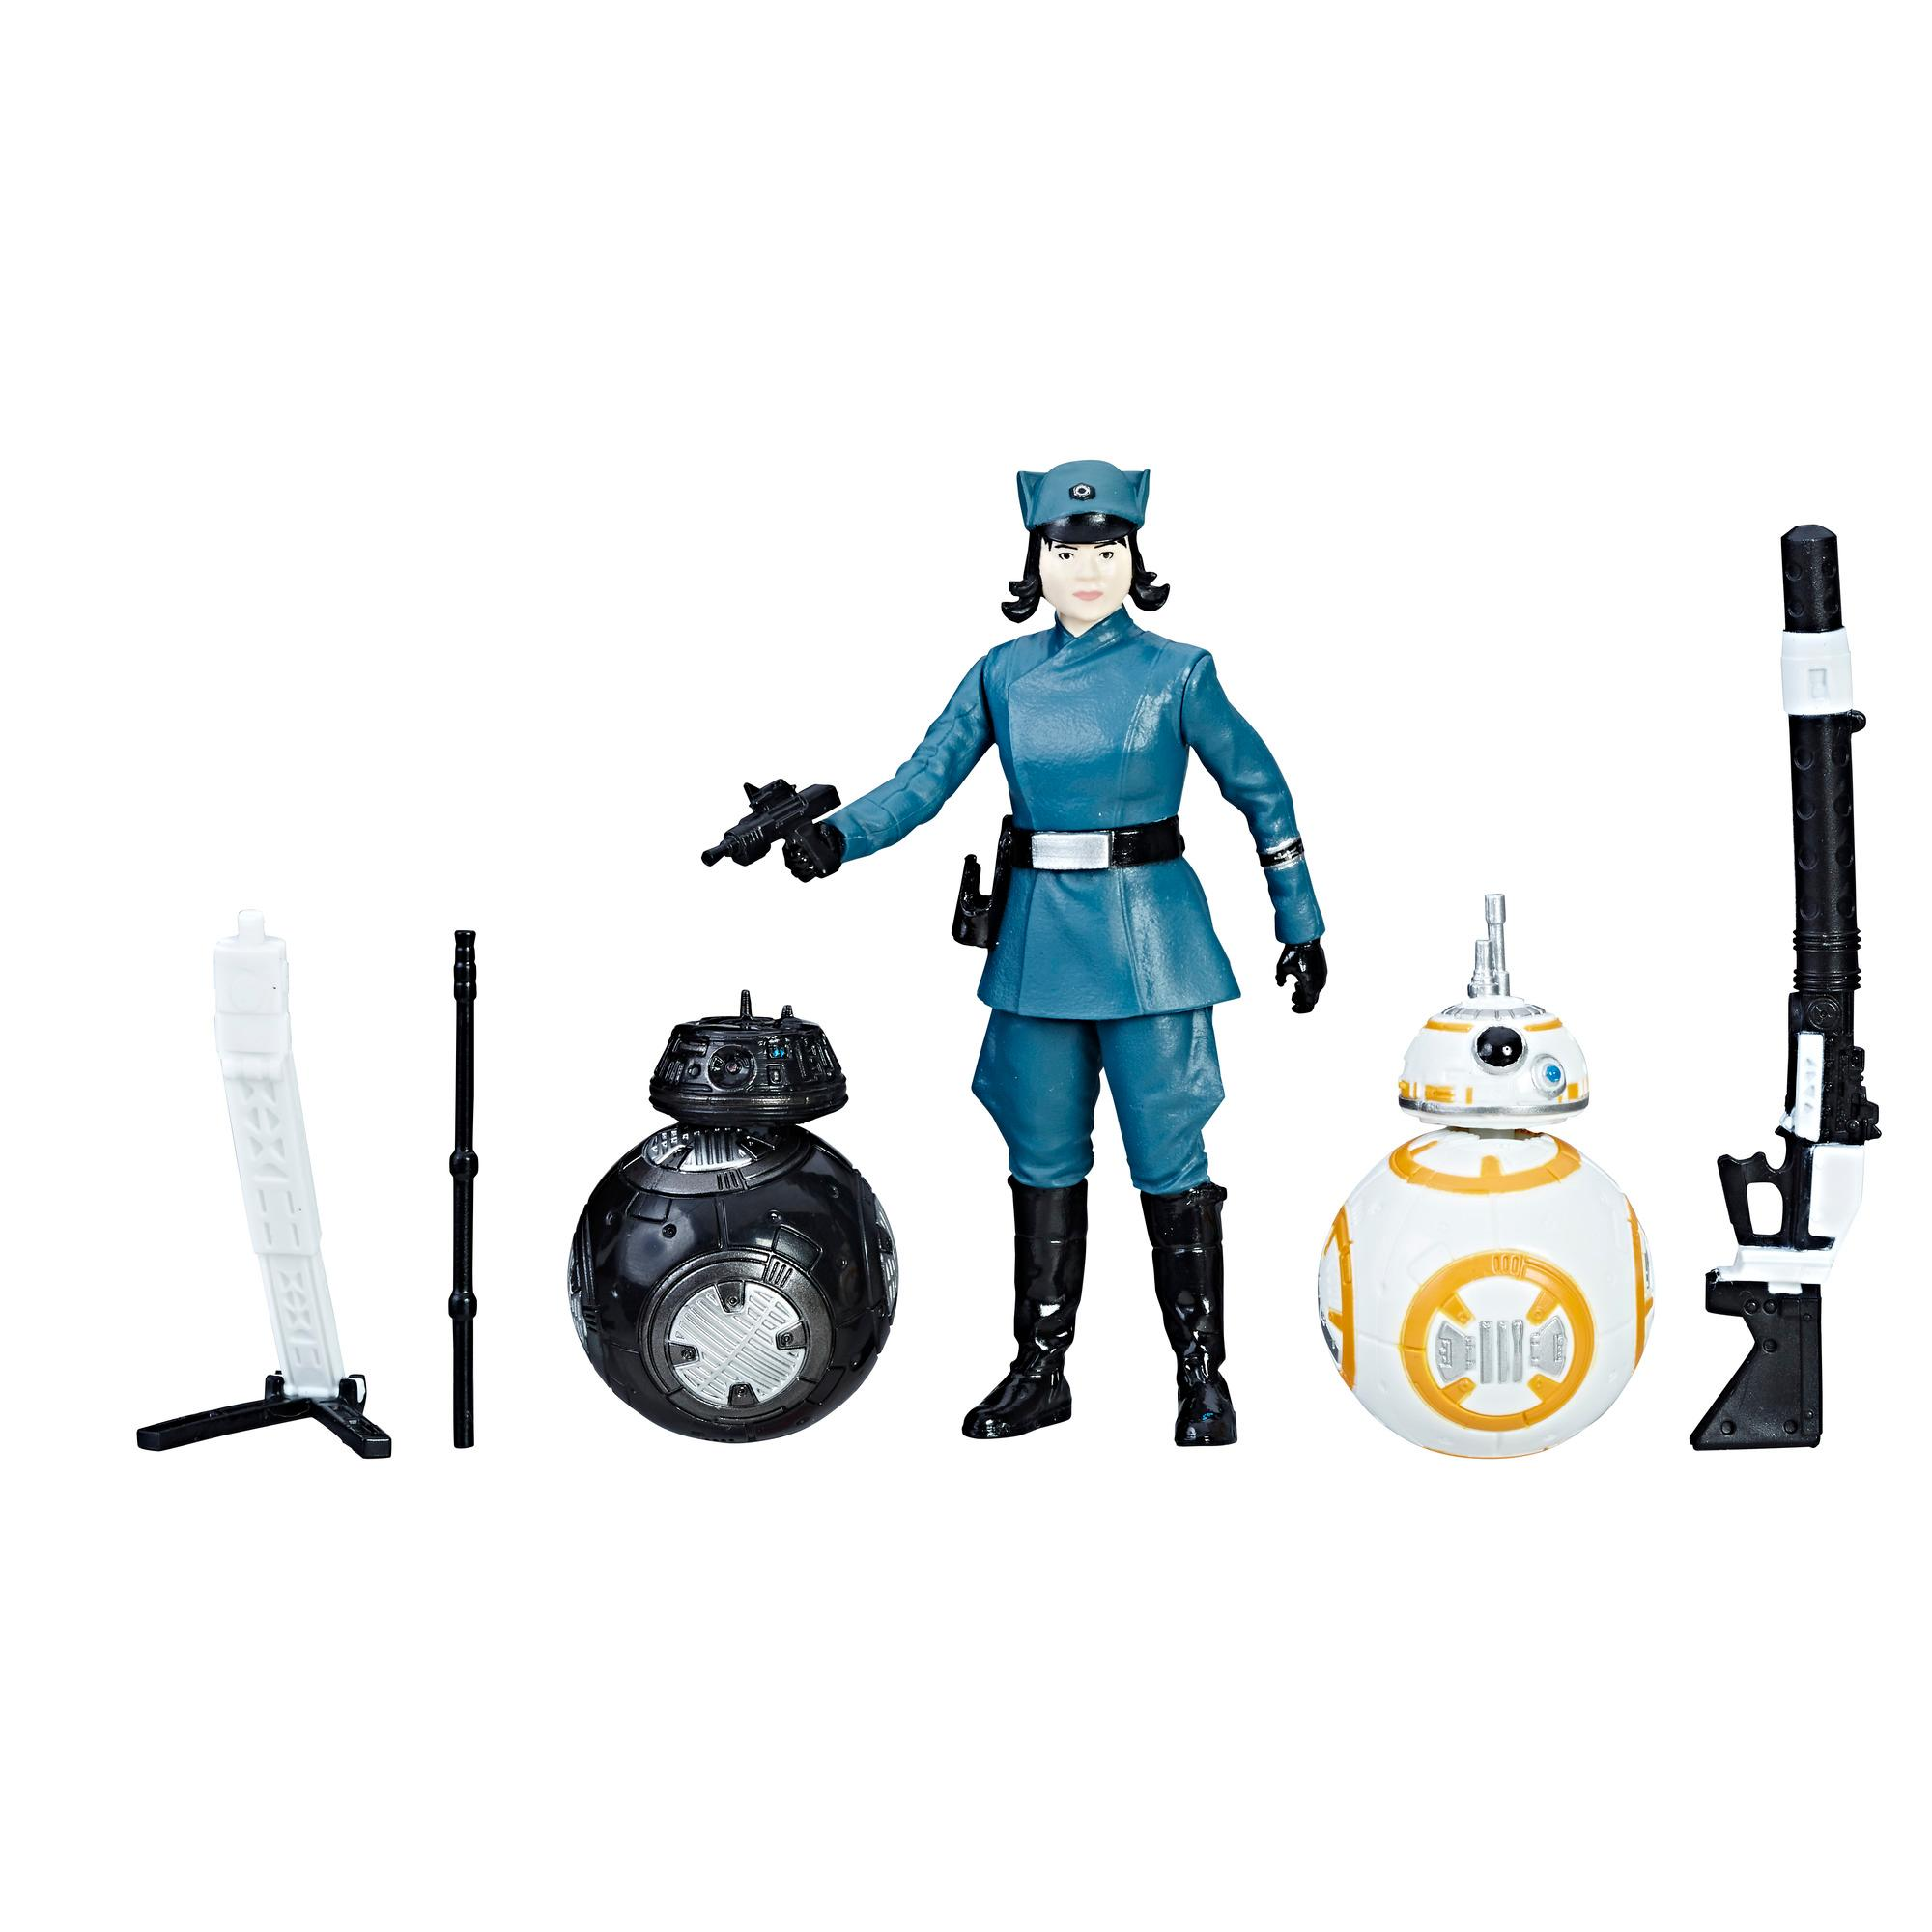 STAR WARS EPISODIO 8 DELUXE FIGURE 2-PACK 9CM ROSE AND BB8 AND BB9E